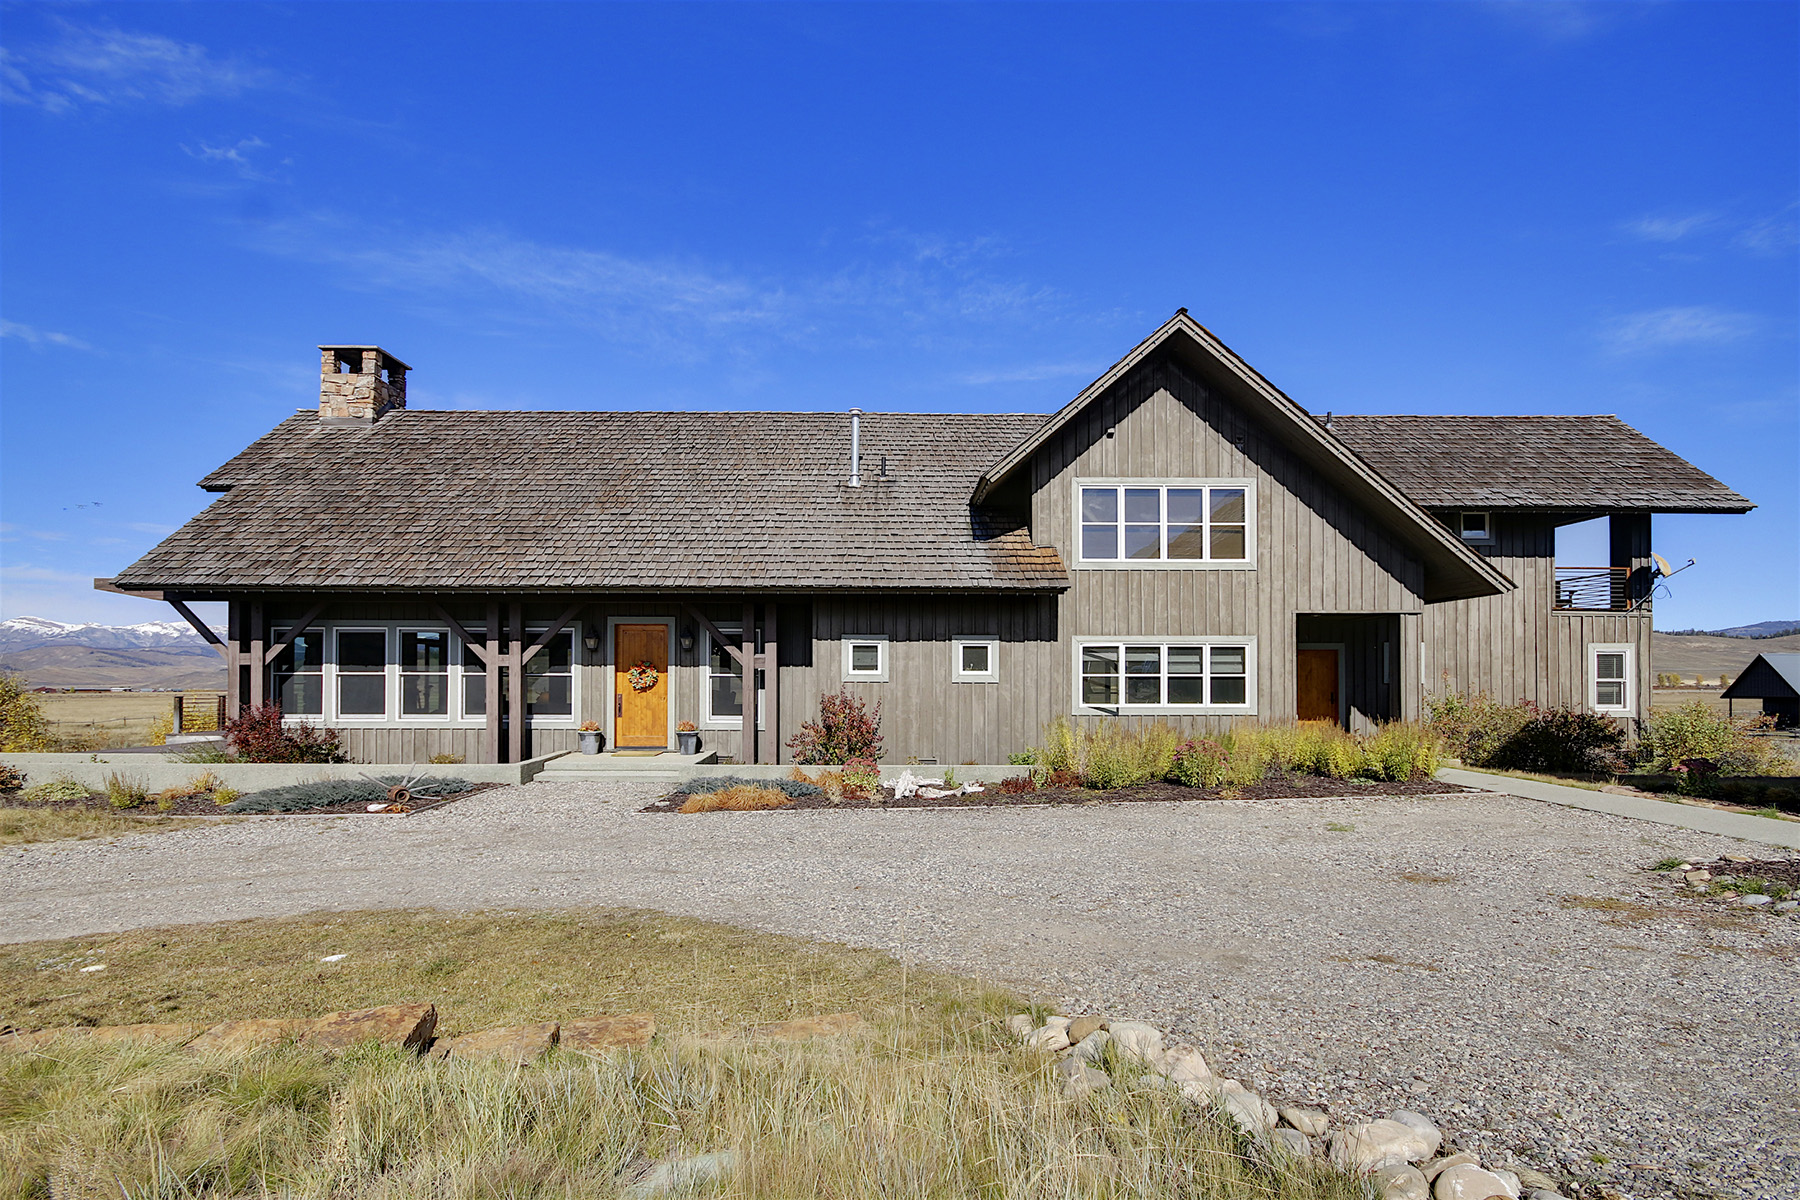 Single Family Homes for Active at Forest Access and Stunning Views 14161 US HIGHWAY 189 & 191 Bondurant, Wyoming 82922 United States